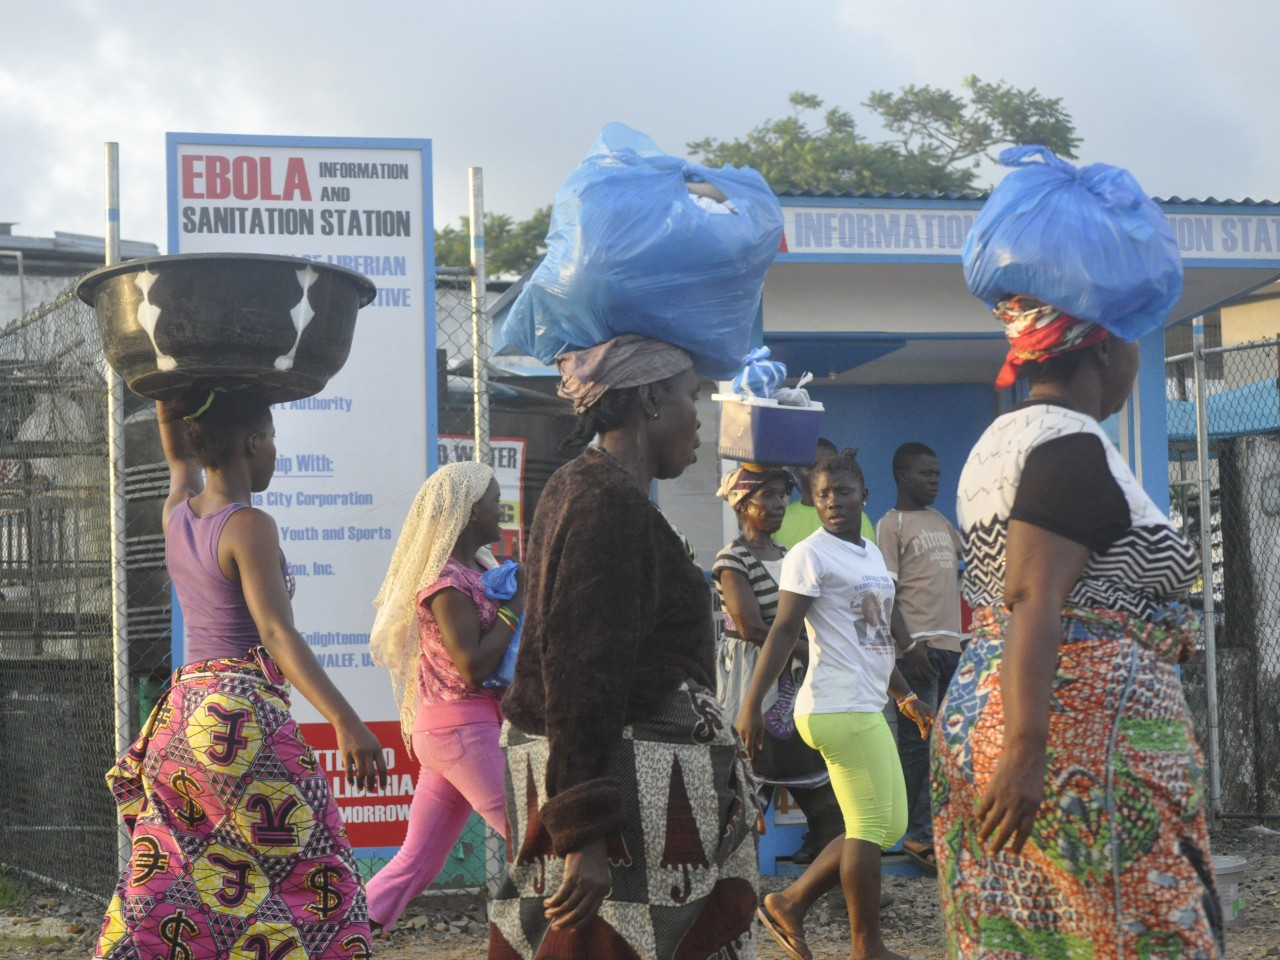 the strike of the ebola virus The ebola virus outbreak that's ravaging west africa probably started with a single infected person, a new genetic analysis shows this west african variant can be traced genetically to a single.